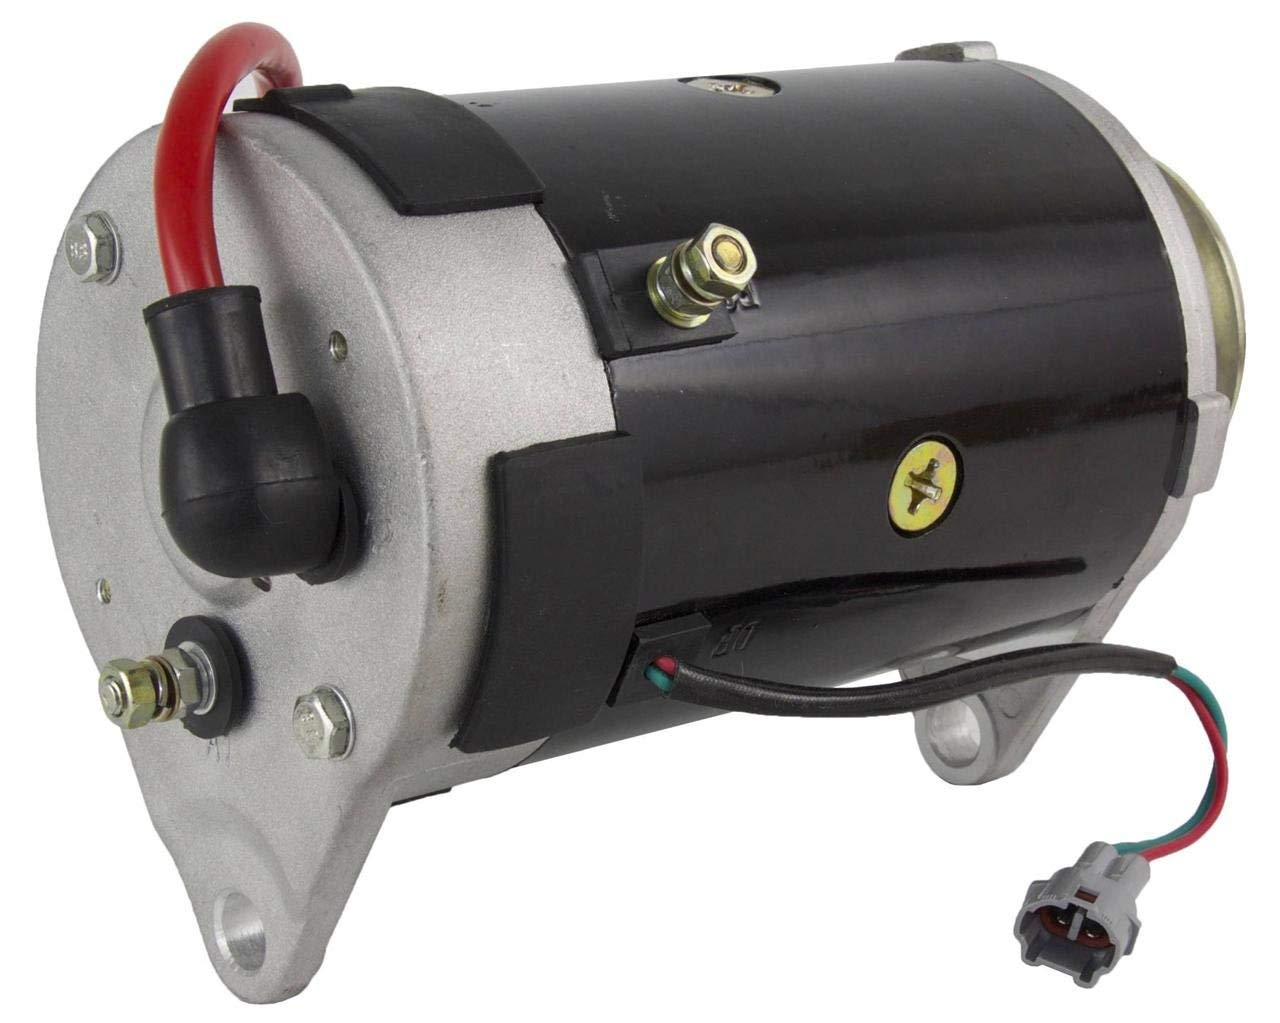 hight resolution of new starter generator for yamaha golf cart g16 g19 g20 g21 g22 1996 2003 2 yr warranty walmart com